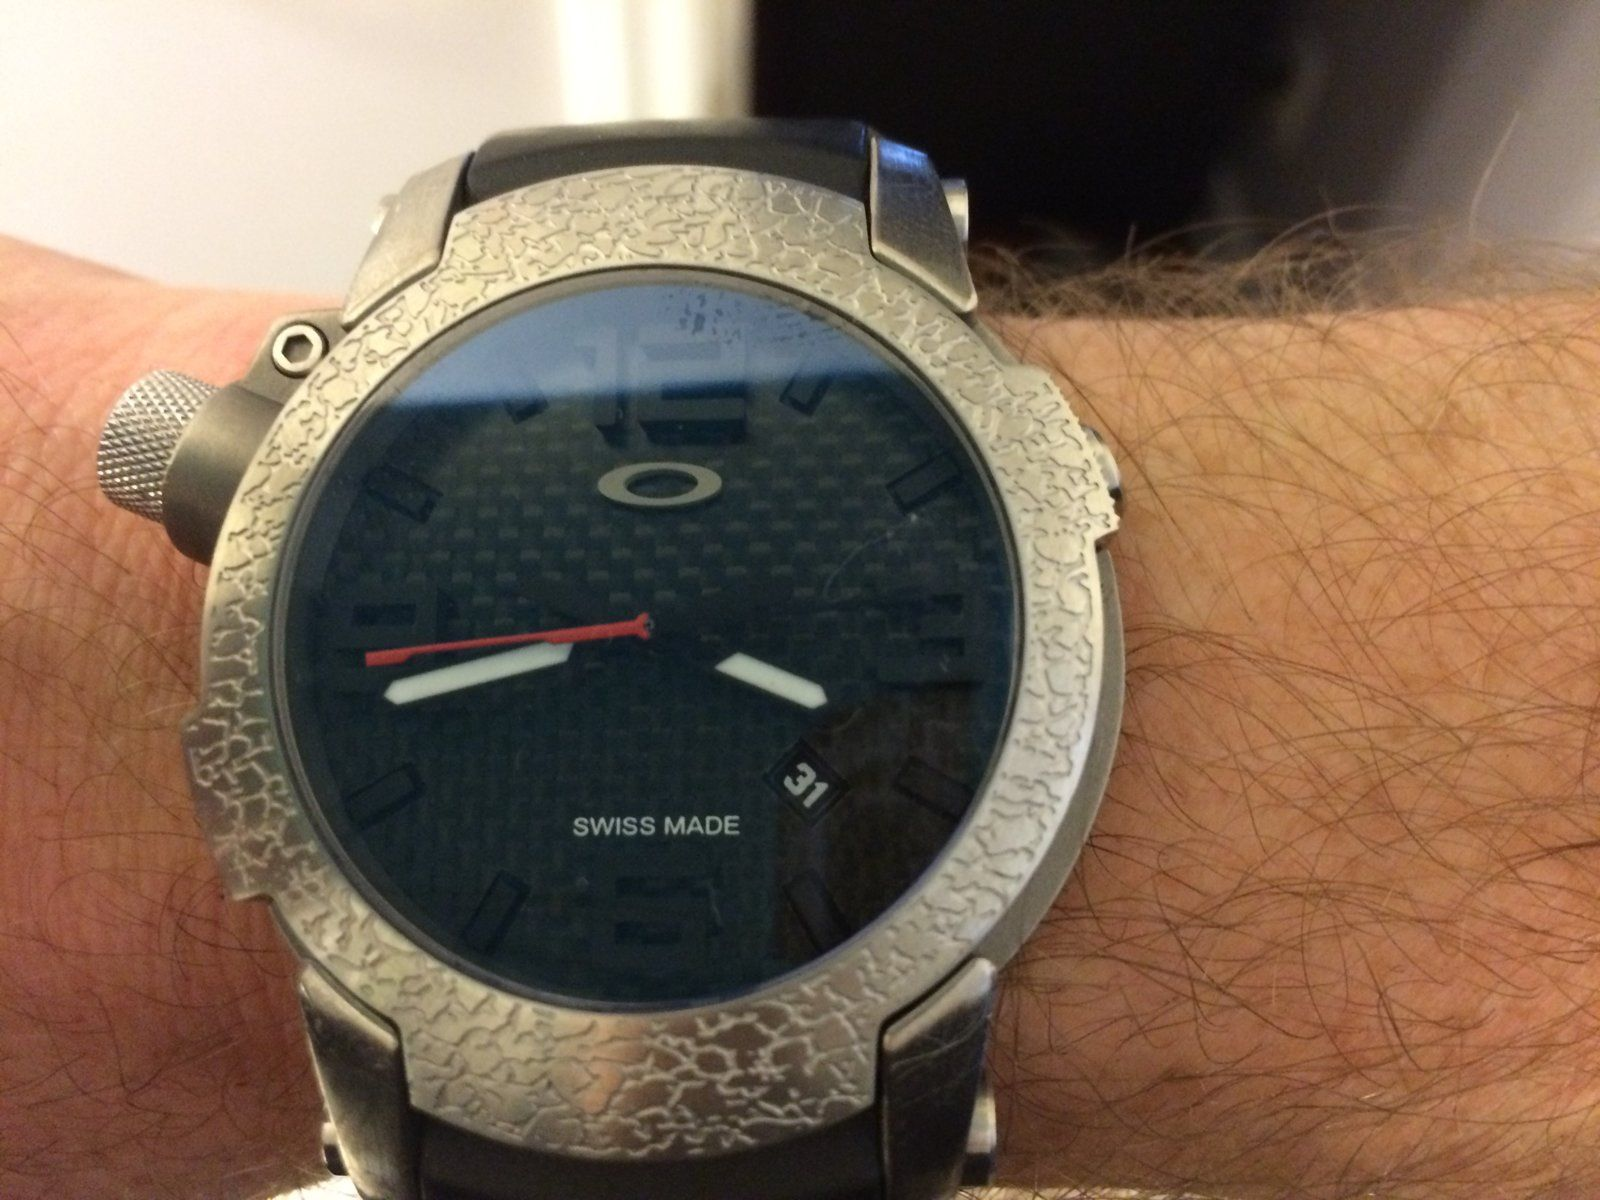 Rocking the holiday killswitch w/ crackle bezel for New Years - image.jpeg